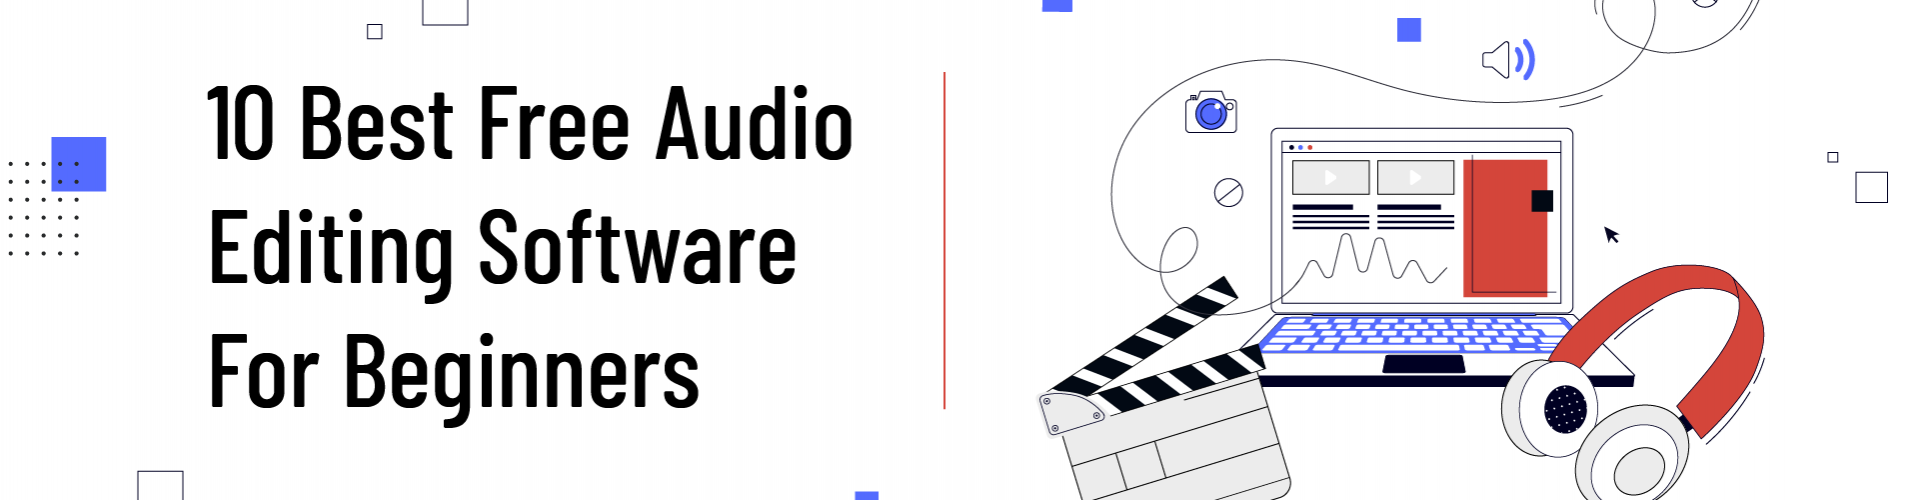 Top 10 Best Free Audio Editing Software for Beginners – Digirater